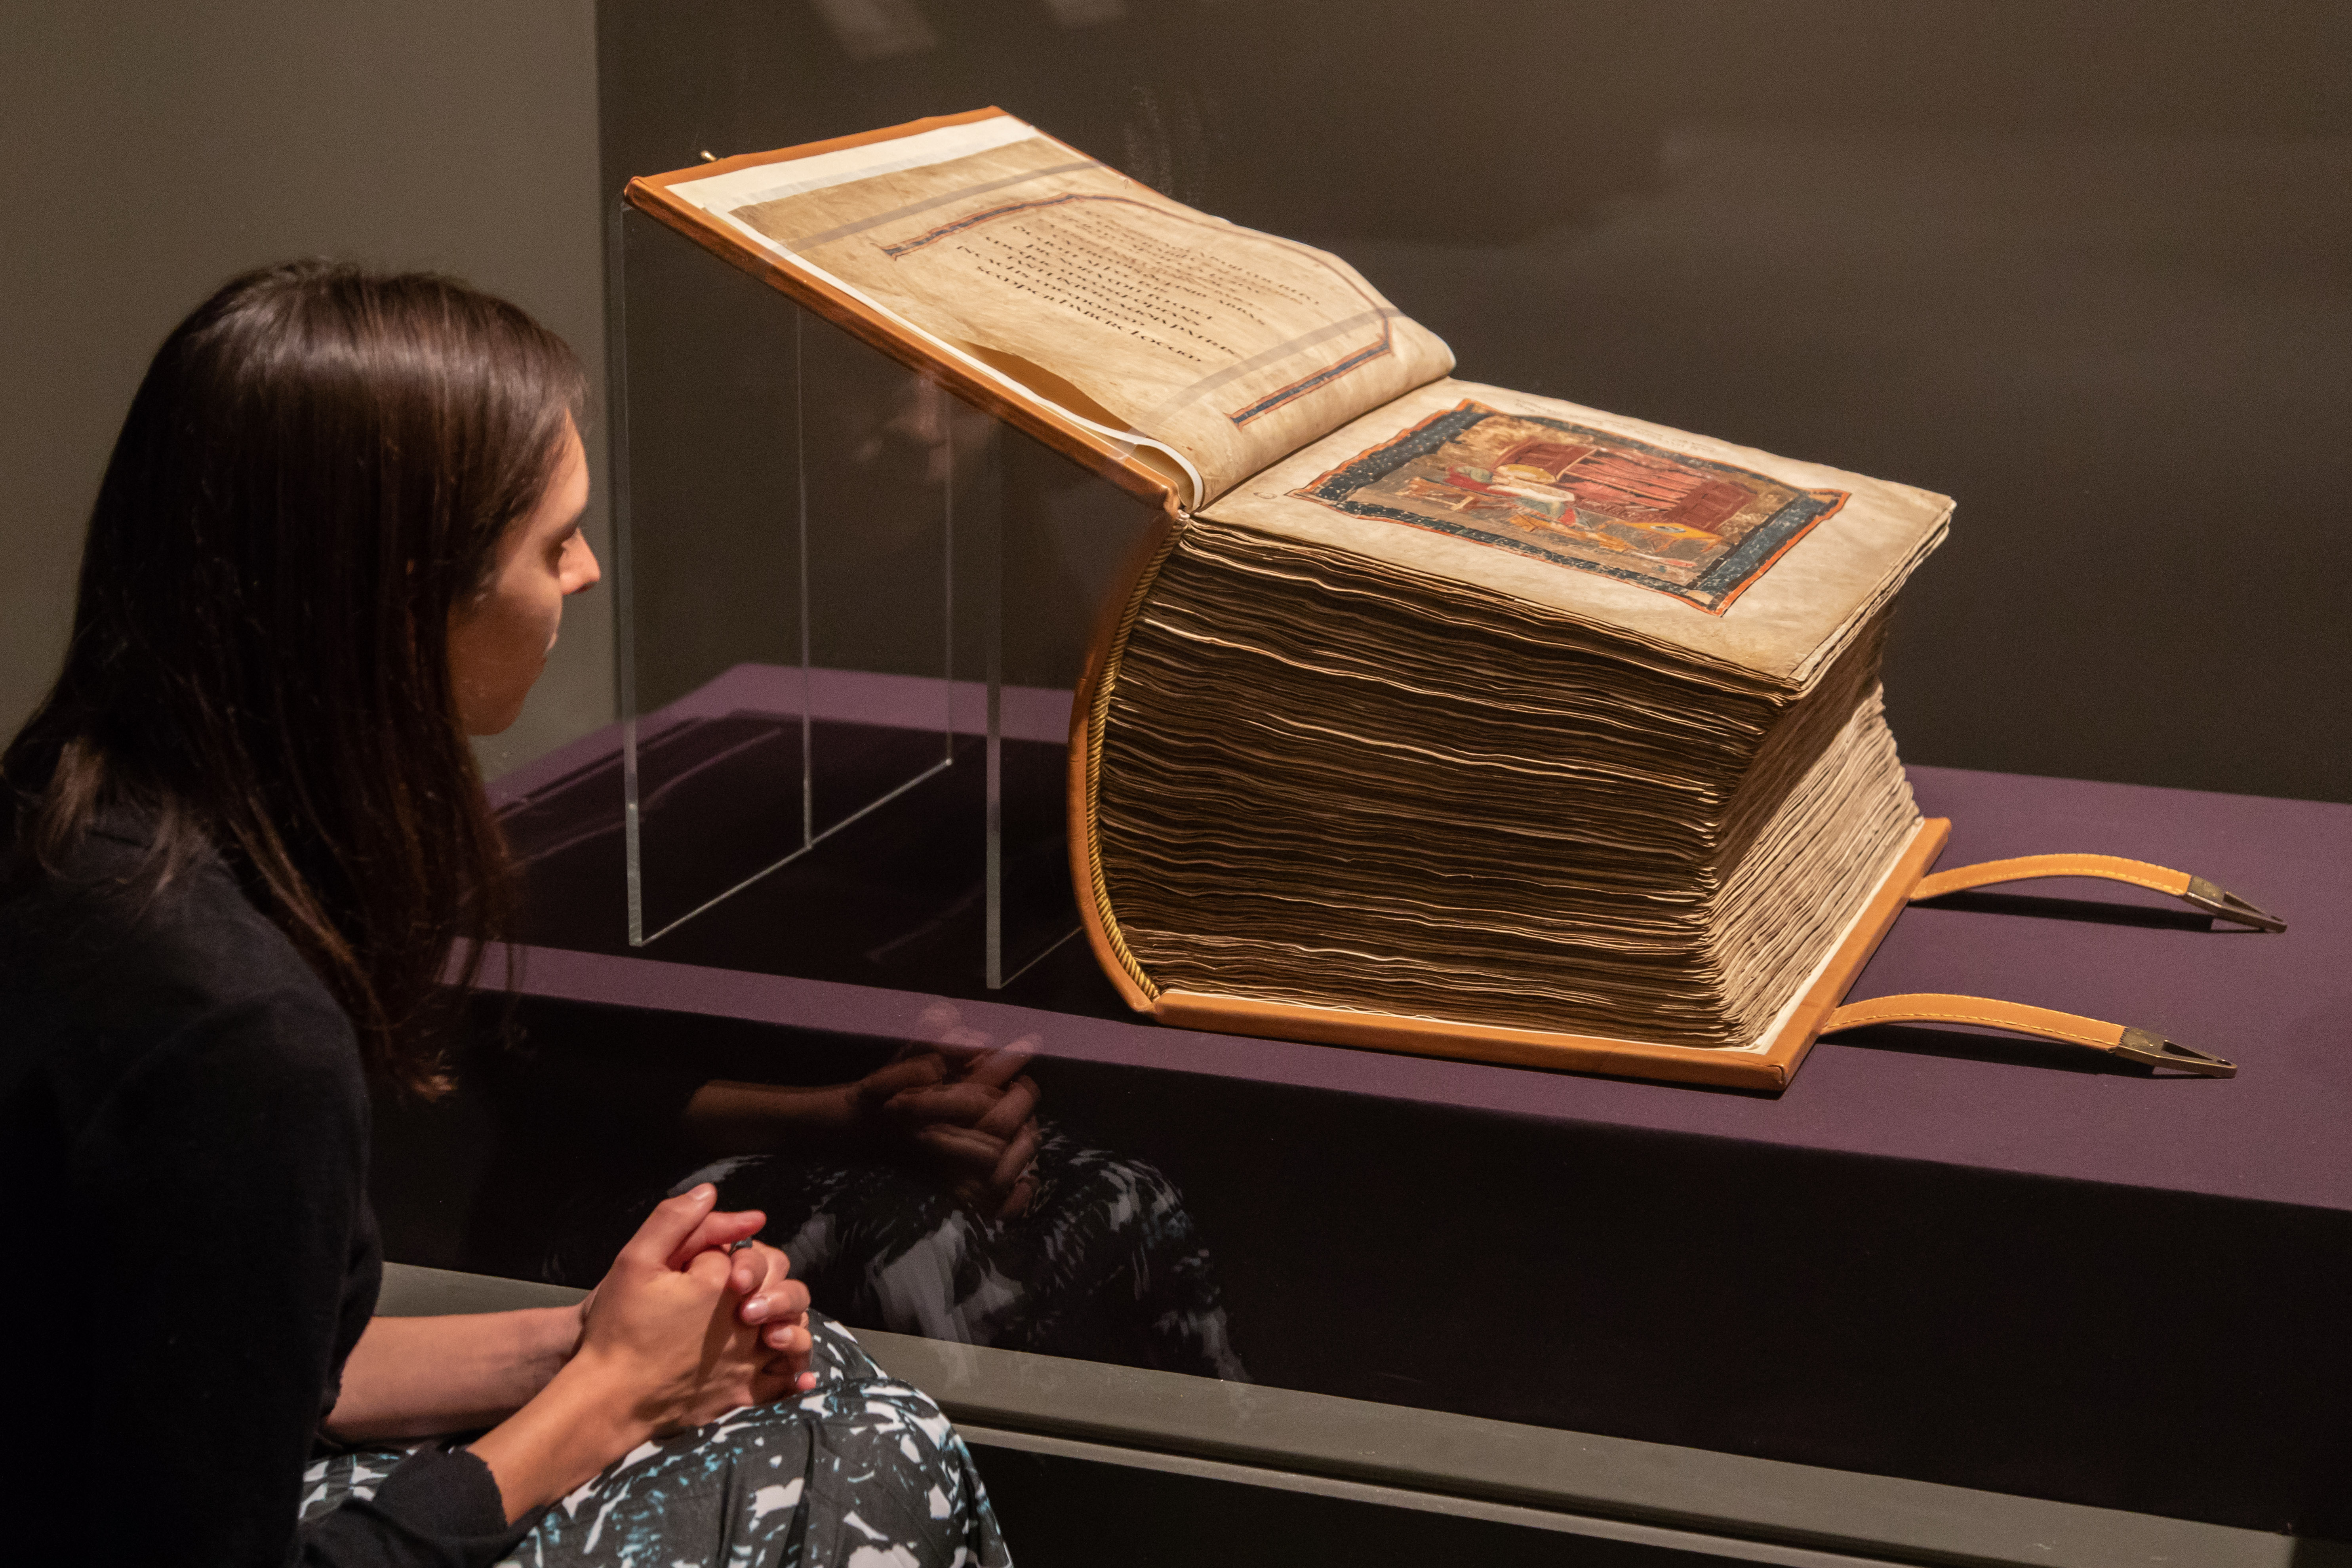 codex-amiatinus-biblioteca-medicea-laurenziana